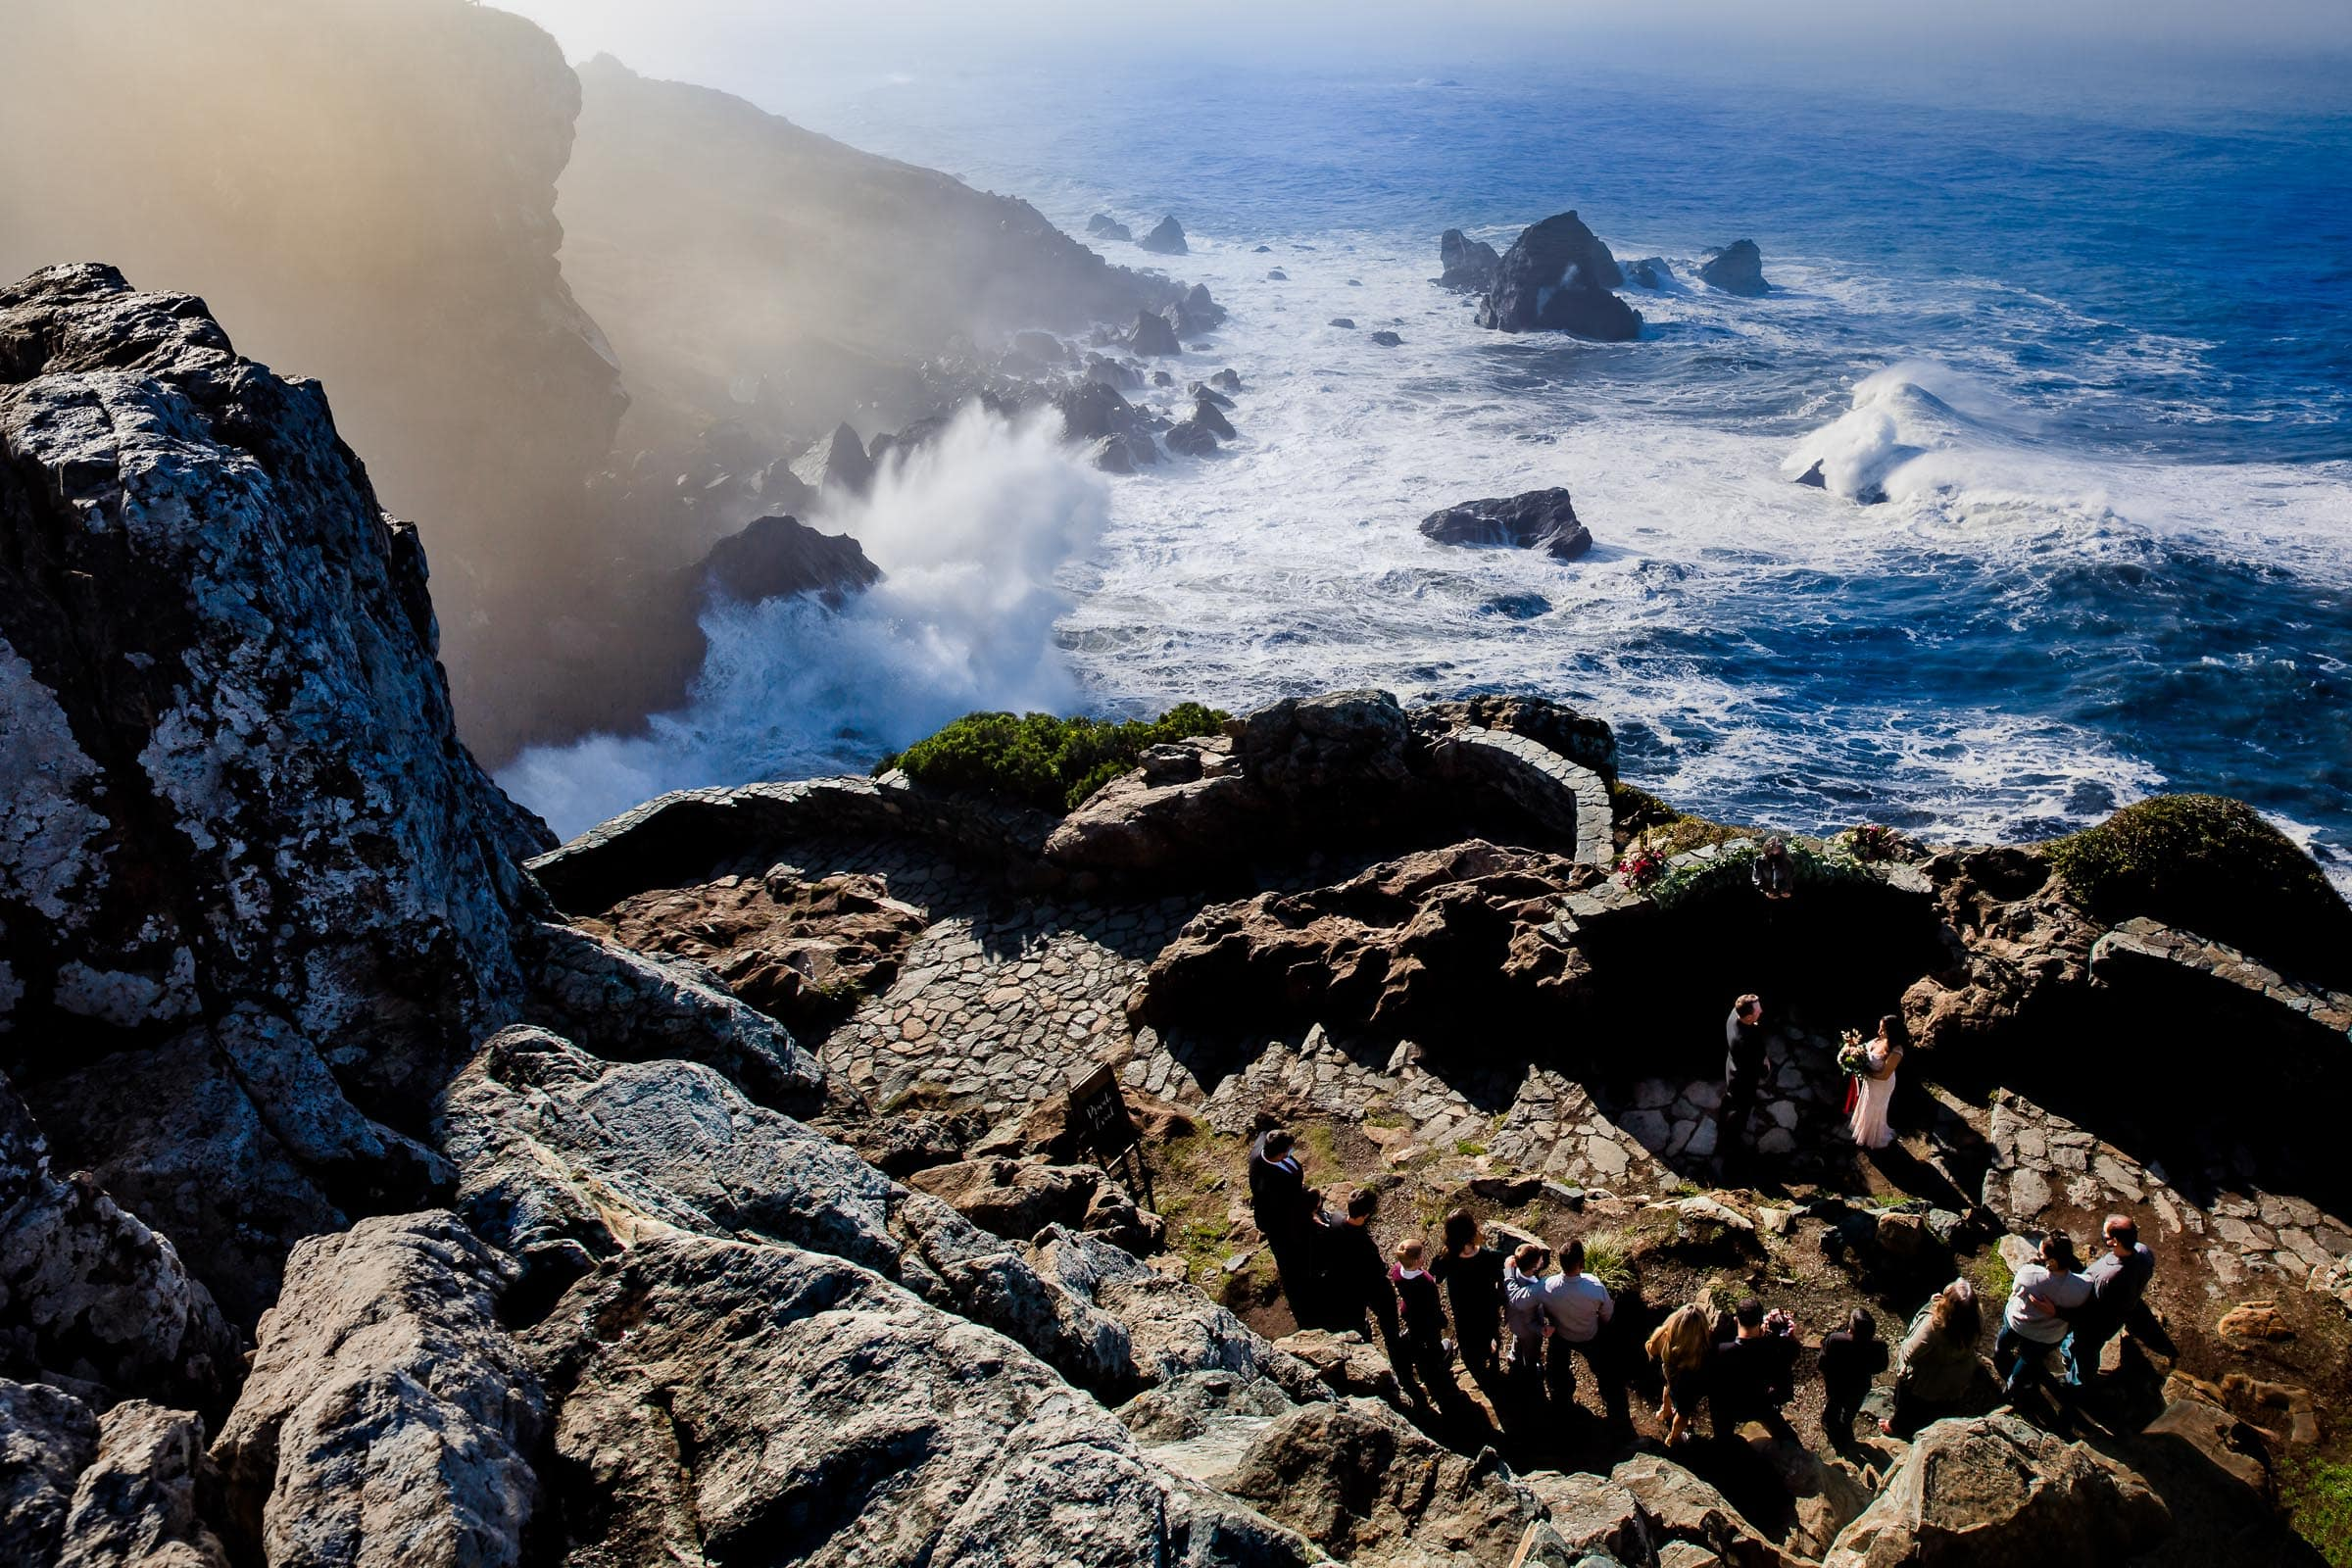 Epic wide angle photo of Patricks Point elopement ceremony on Wedding Rock near Trinidad California